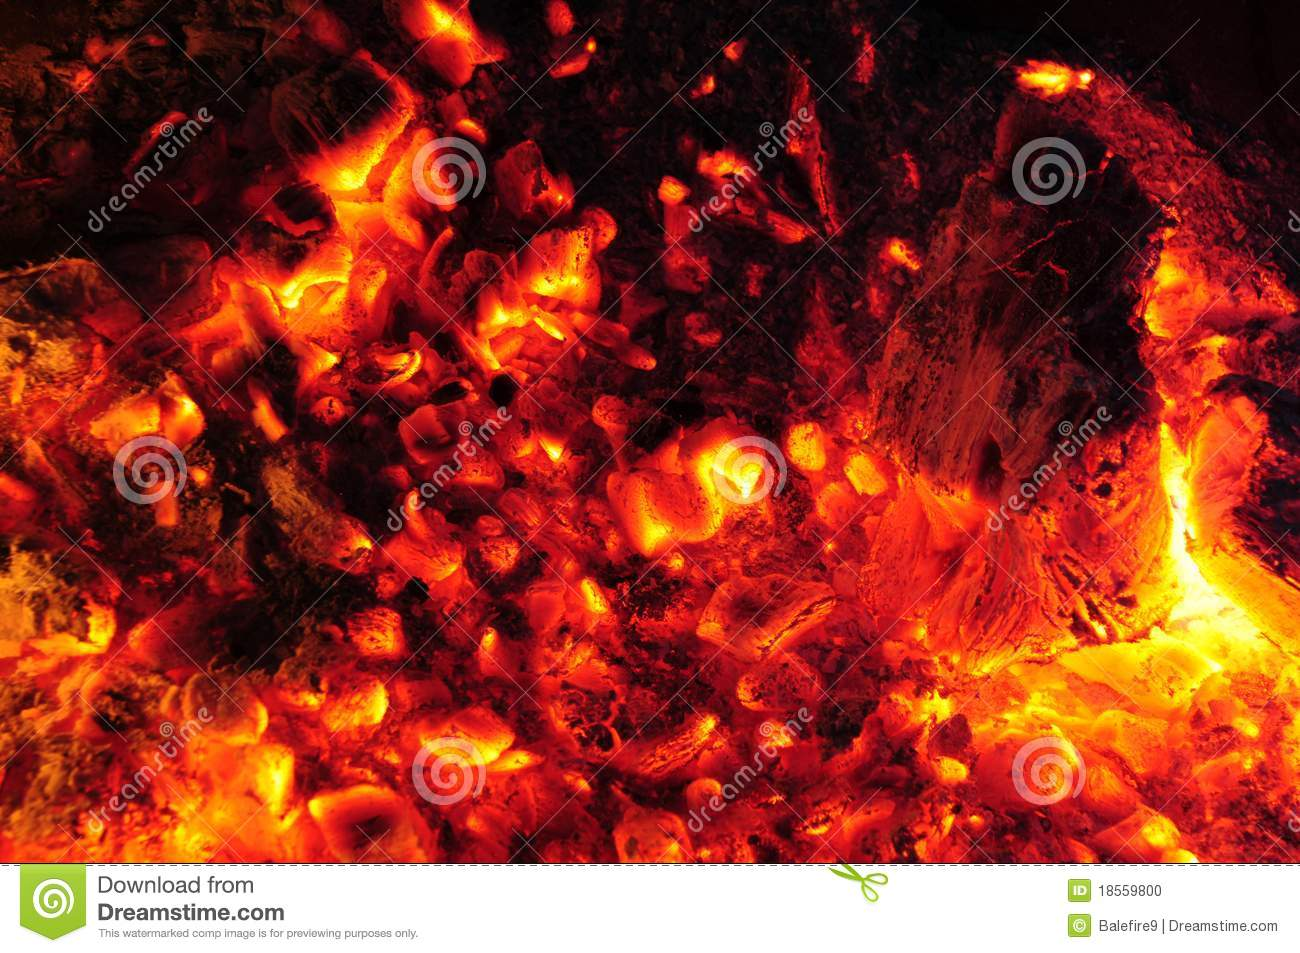 Burning embers in a molten fire